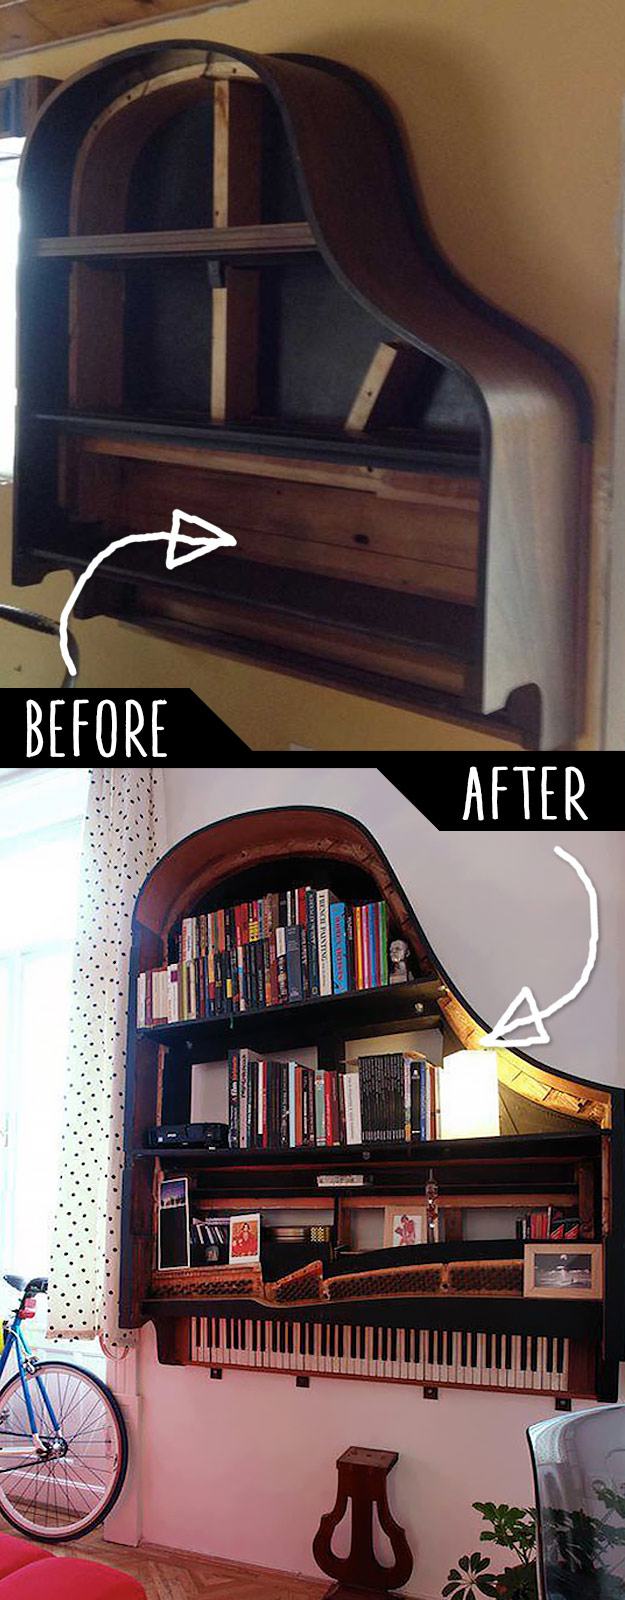 DIY Furniture Hacks   Grand Piano Bookshelf   Cool Ideas for Creative Do It Yourself Furniture Made From Things You Might Not Expect #diy